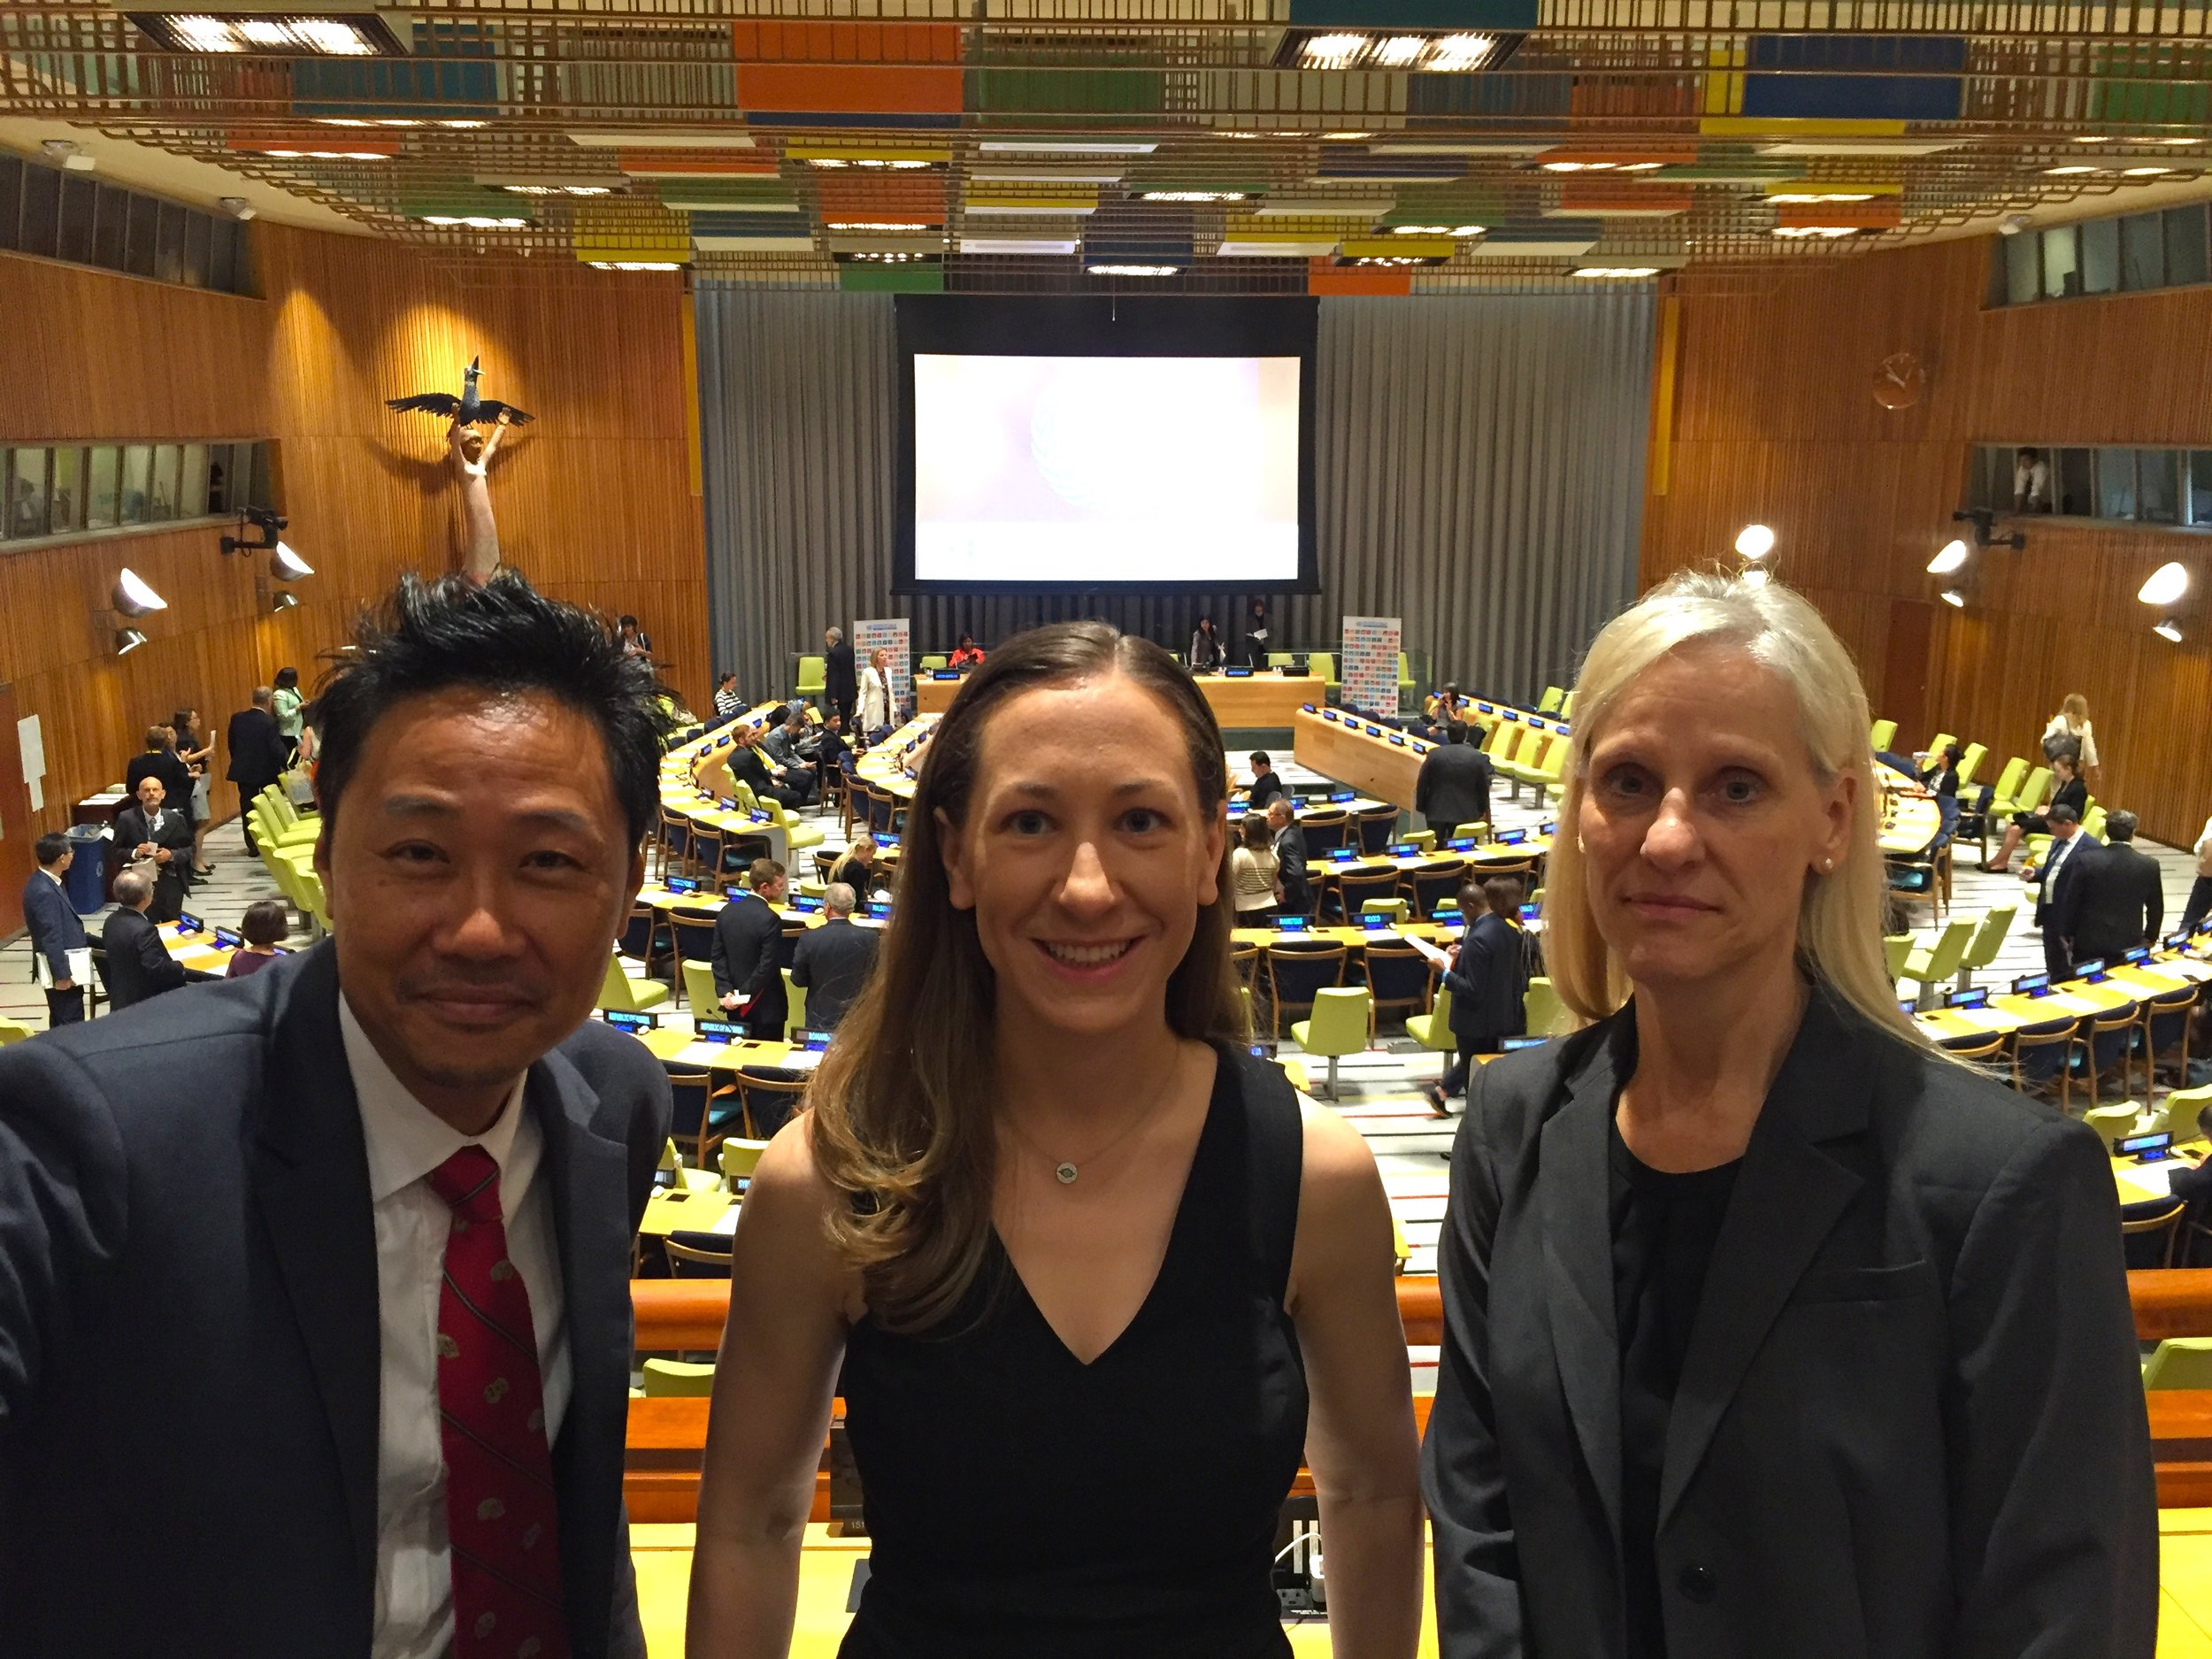 FROM RIGHT: ASM PRESIDENT SUSAN SHARP, ERIKA KURT, WFNS5 WHO LIAISON KEE PARK